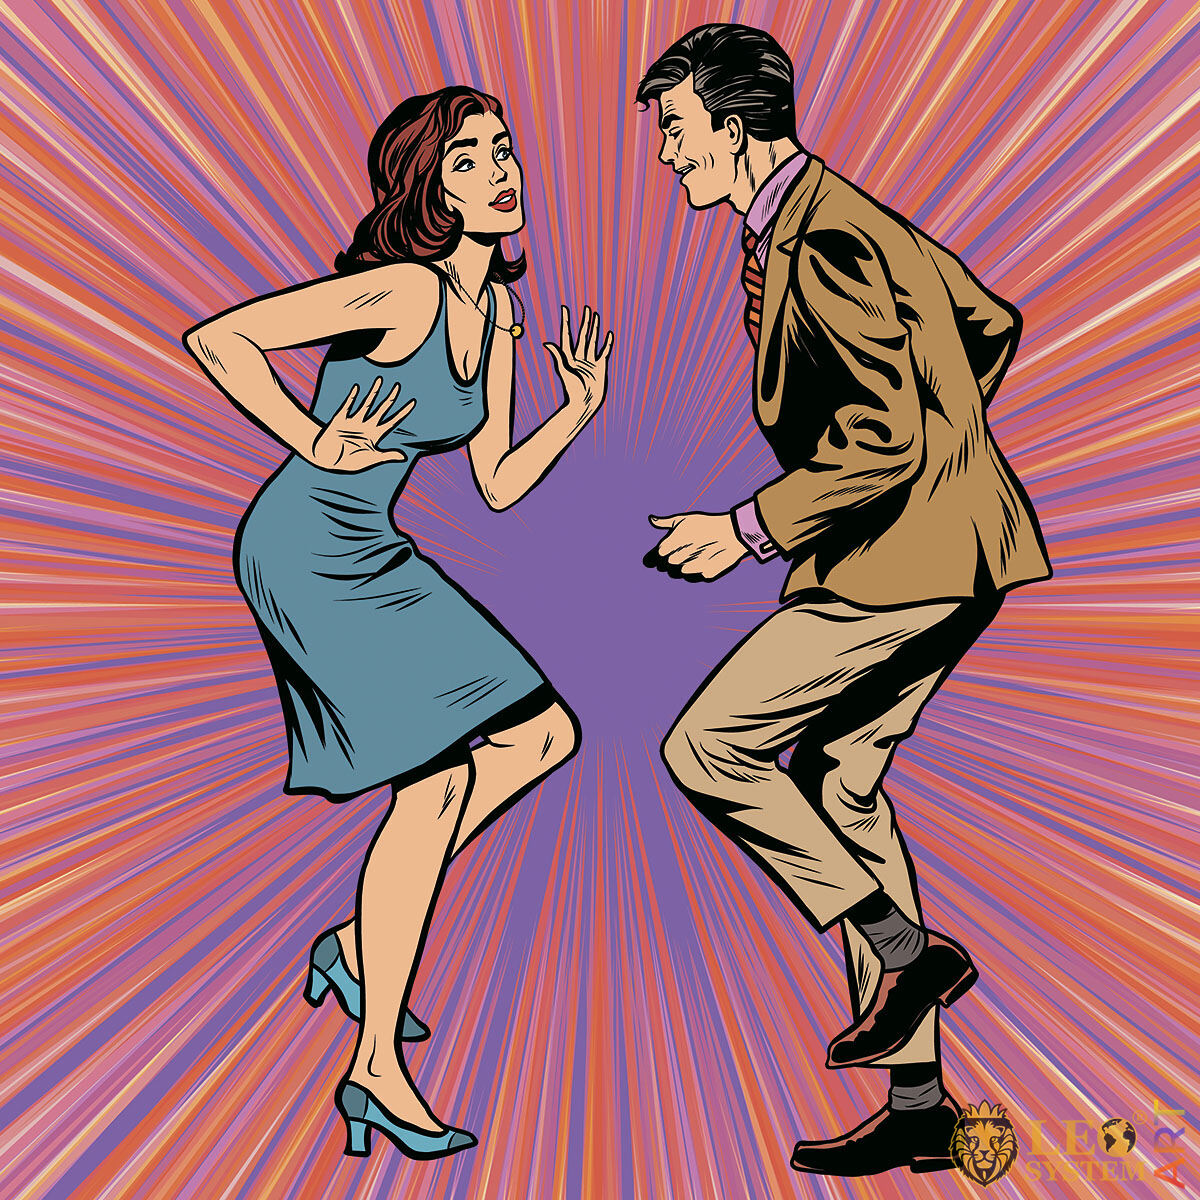 Attractive girl dancing with a man